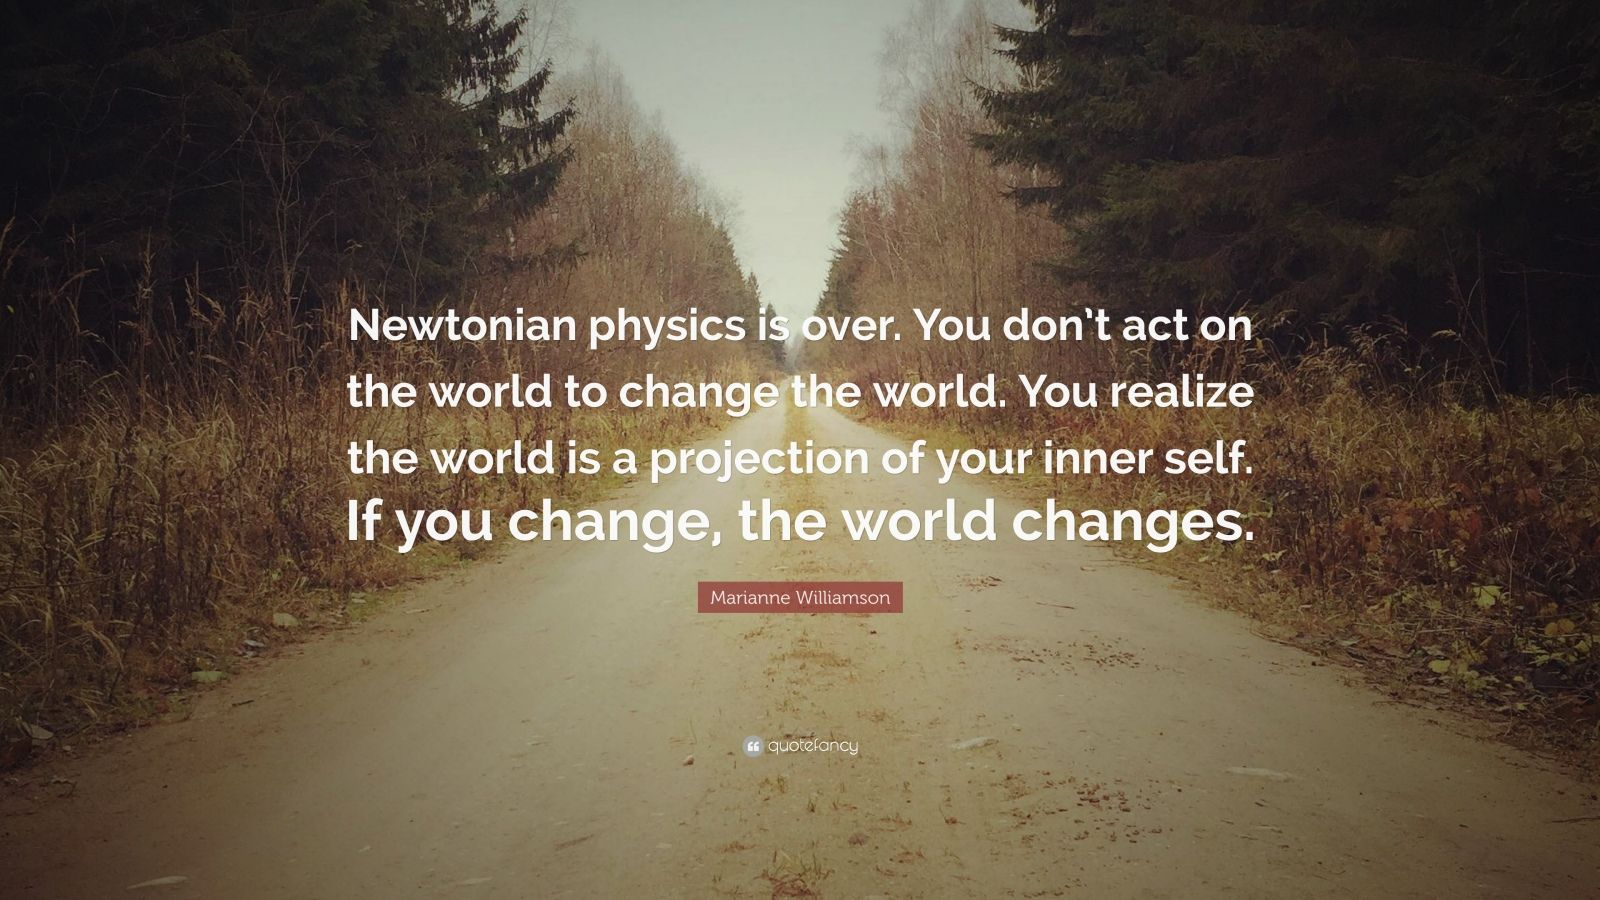 """Marianne Williamson Quote: """"Newtonian physics is over. You don't act on the world to change the world. You realize the world is a projection of your inner self. If you change, the world changes."""""""